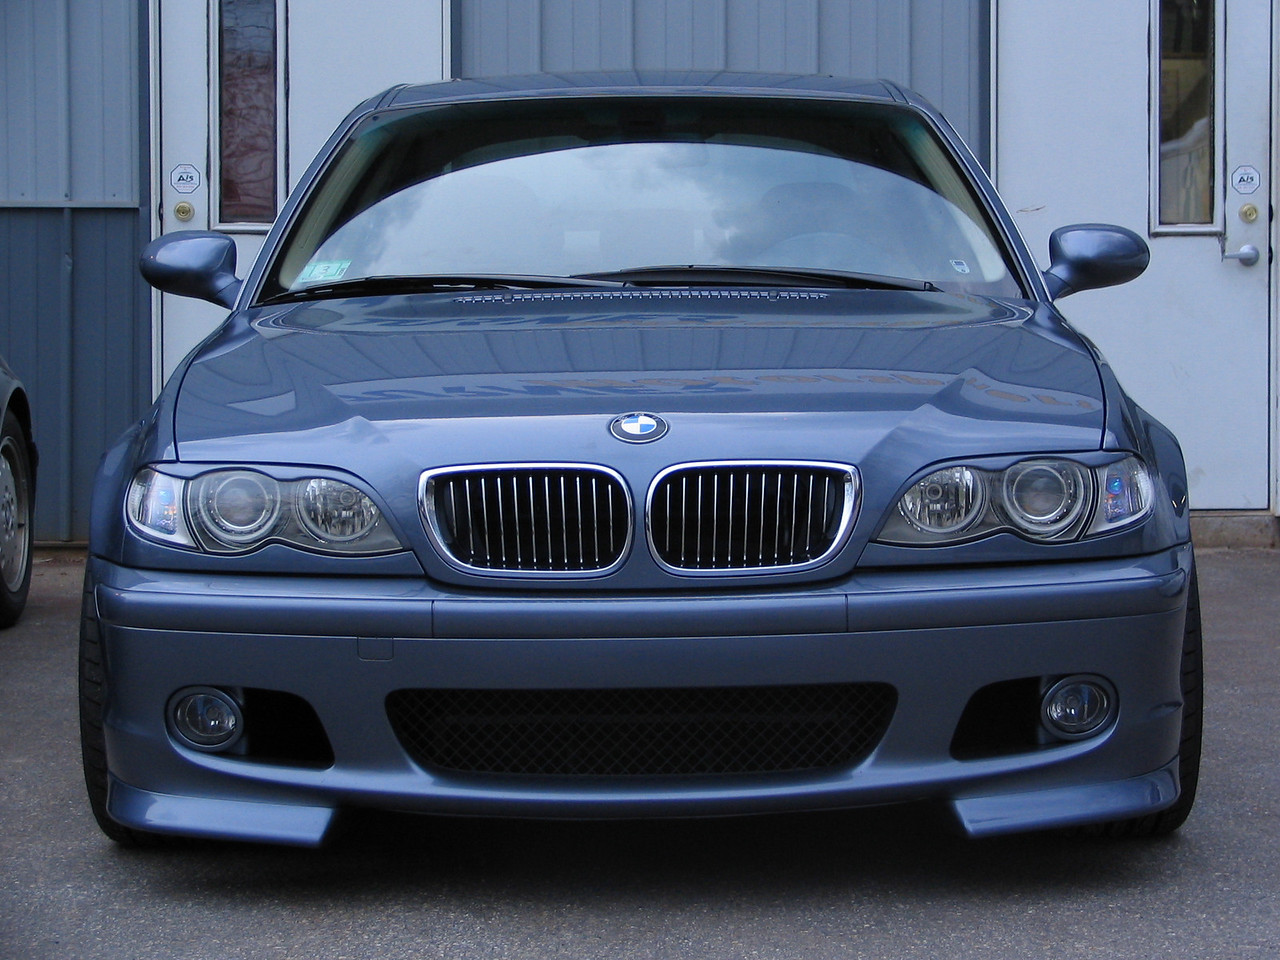 E46 330i. My favorite...